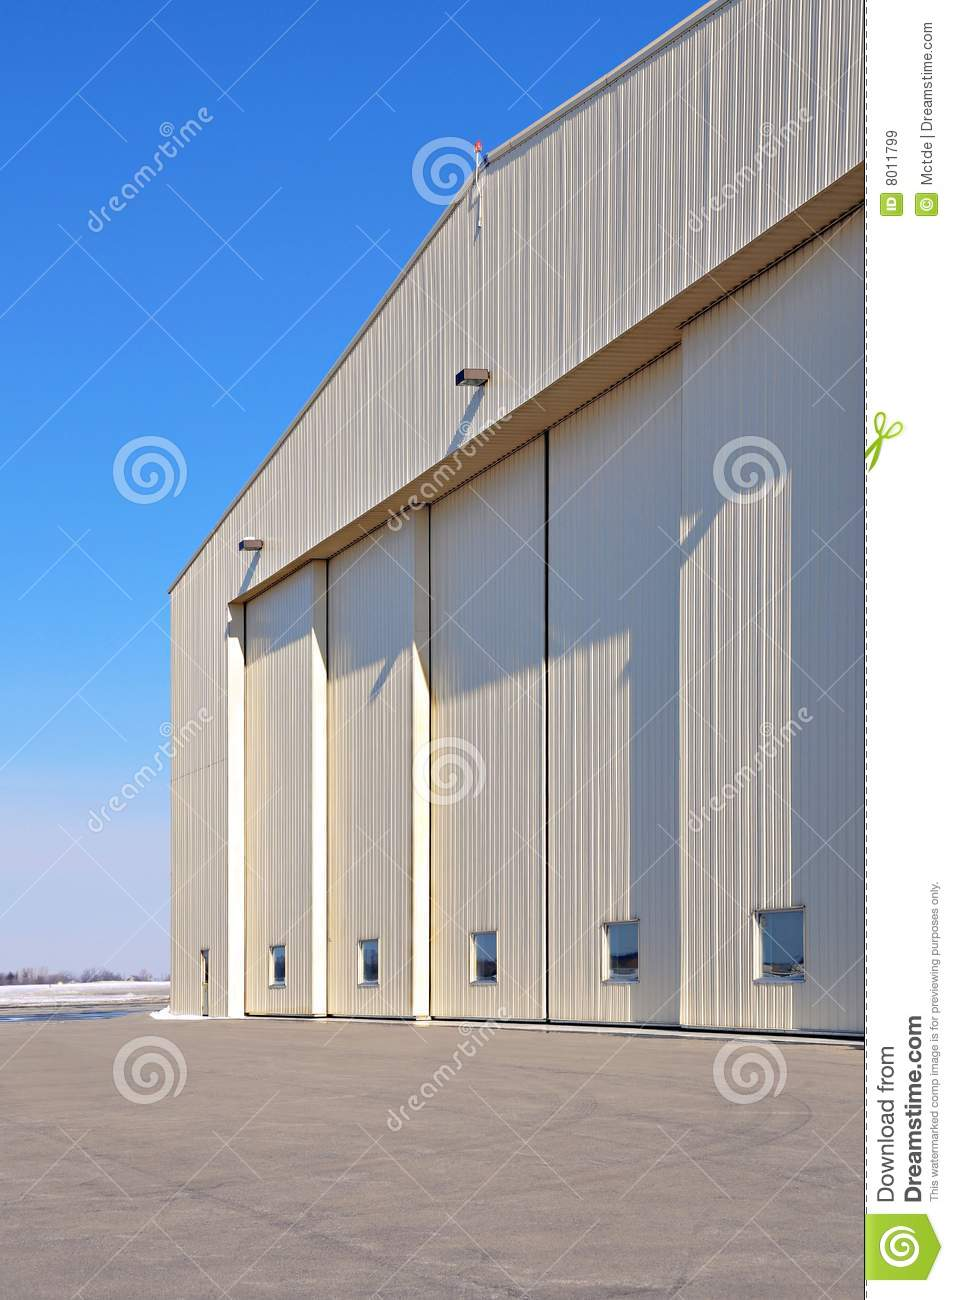 Large Private Aircraft Hanger In An International Airport In Canada